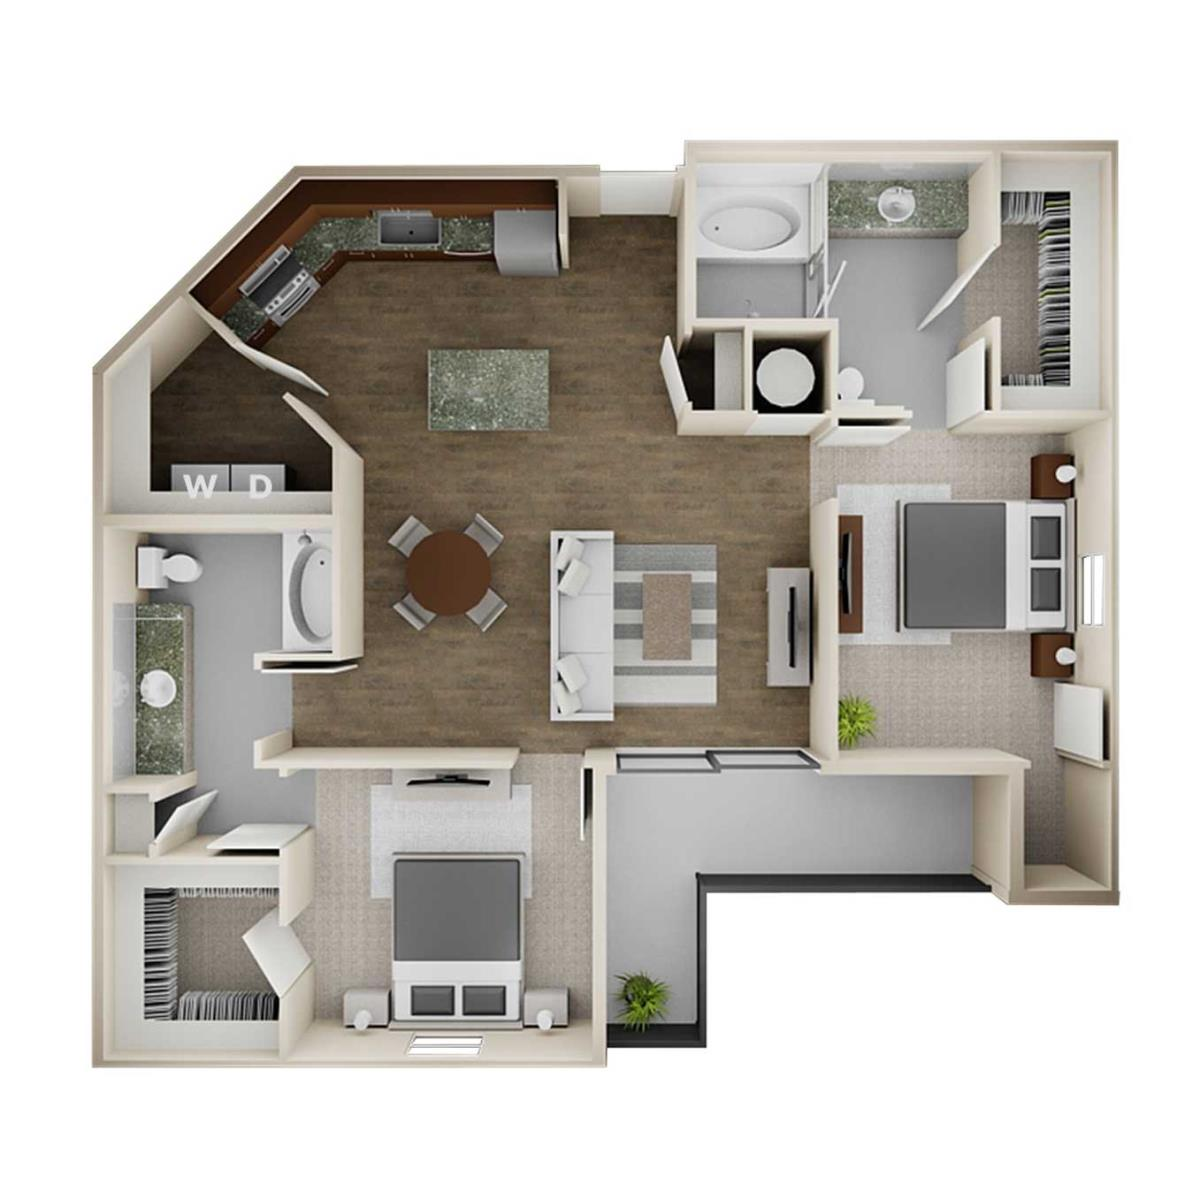 1,209 sq. ft. 2B floor plan